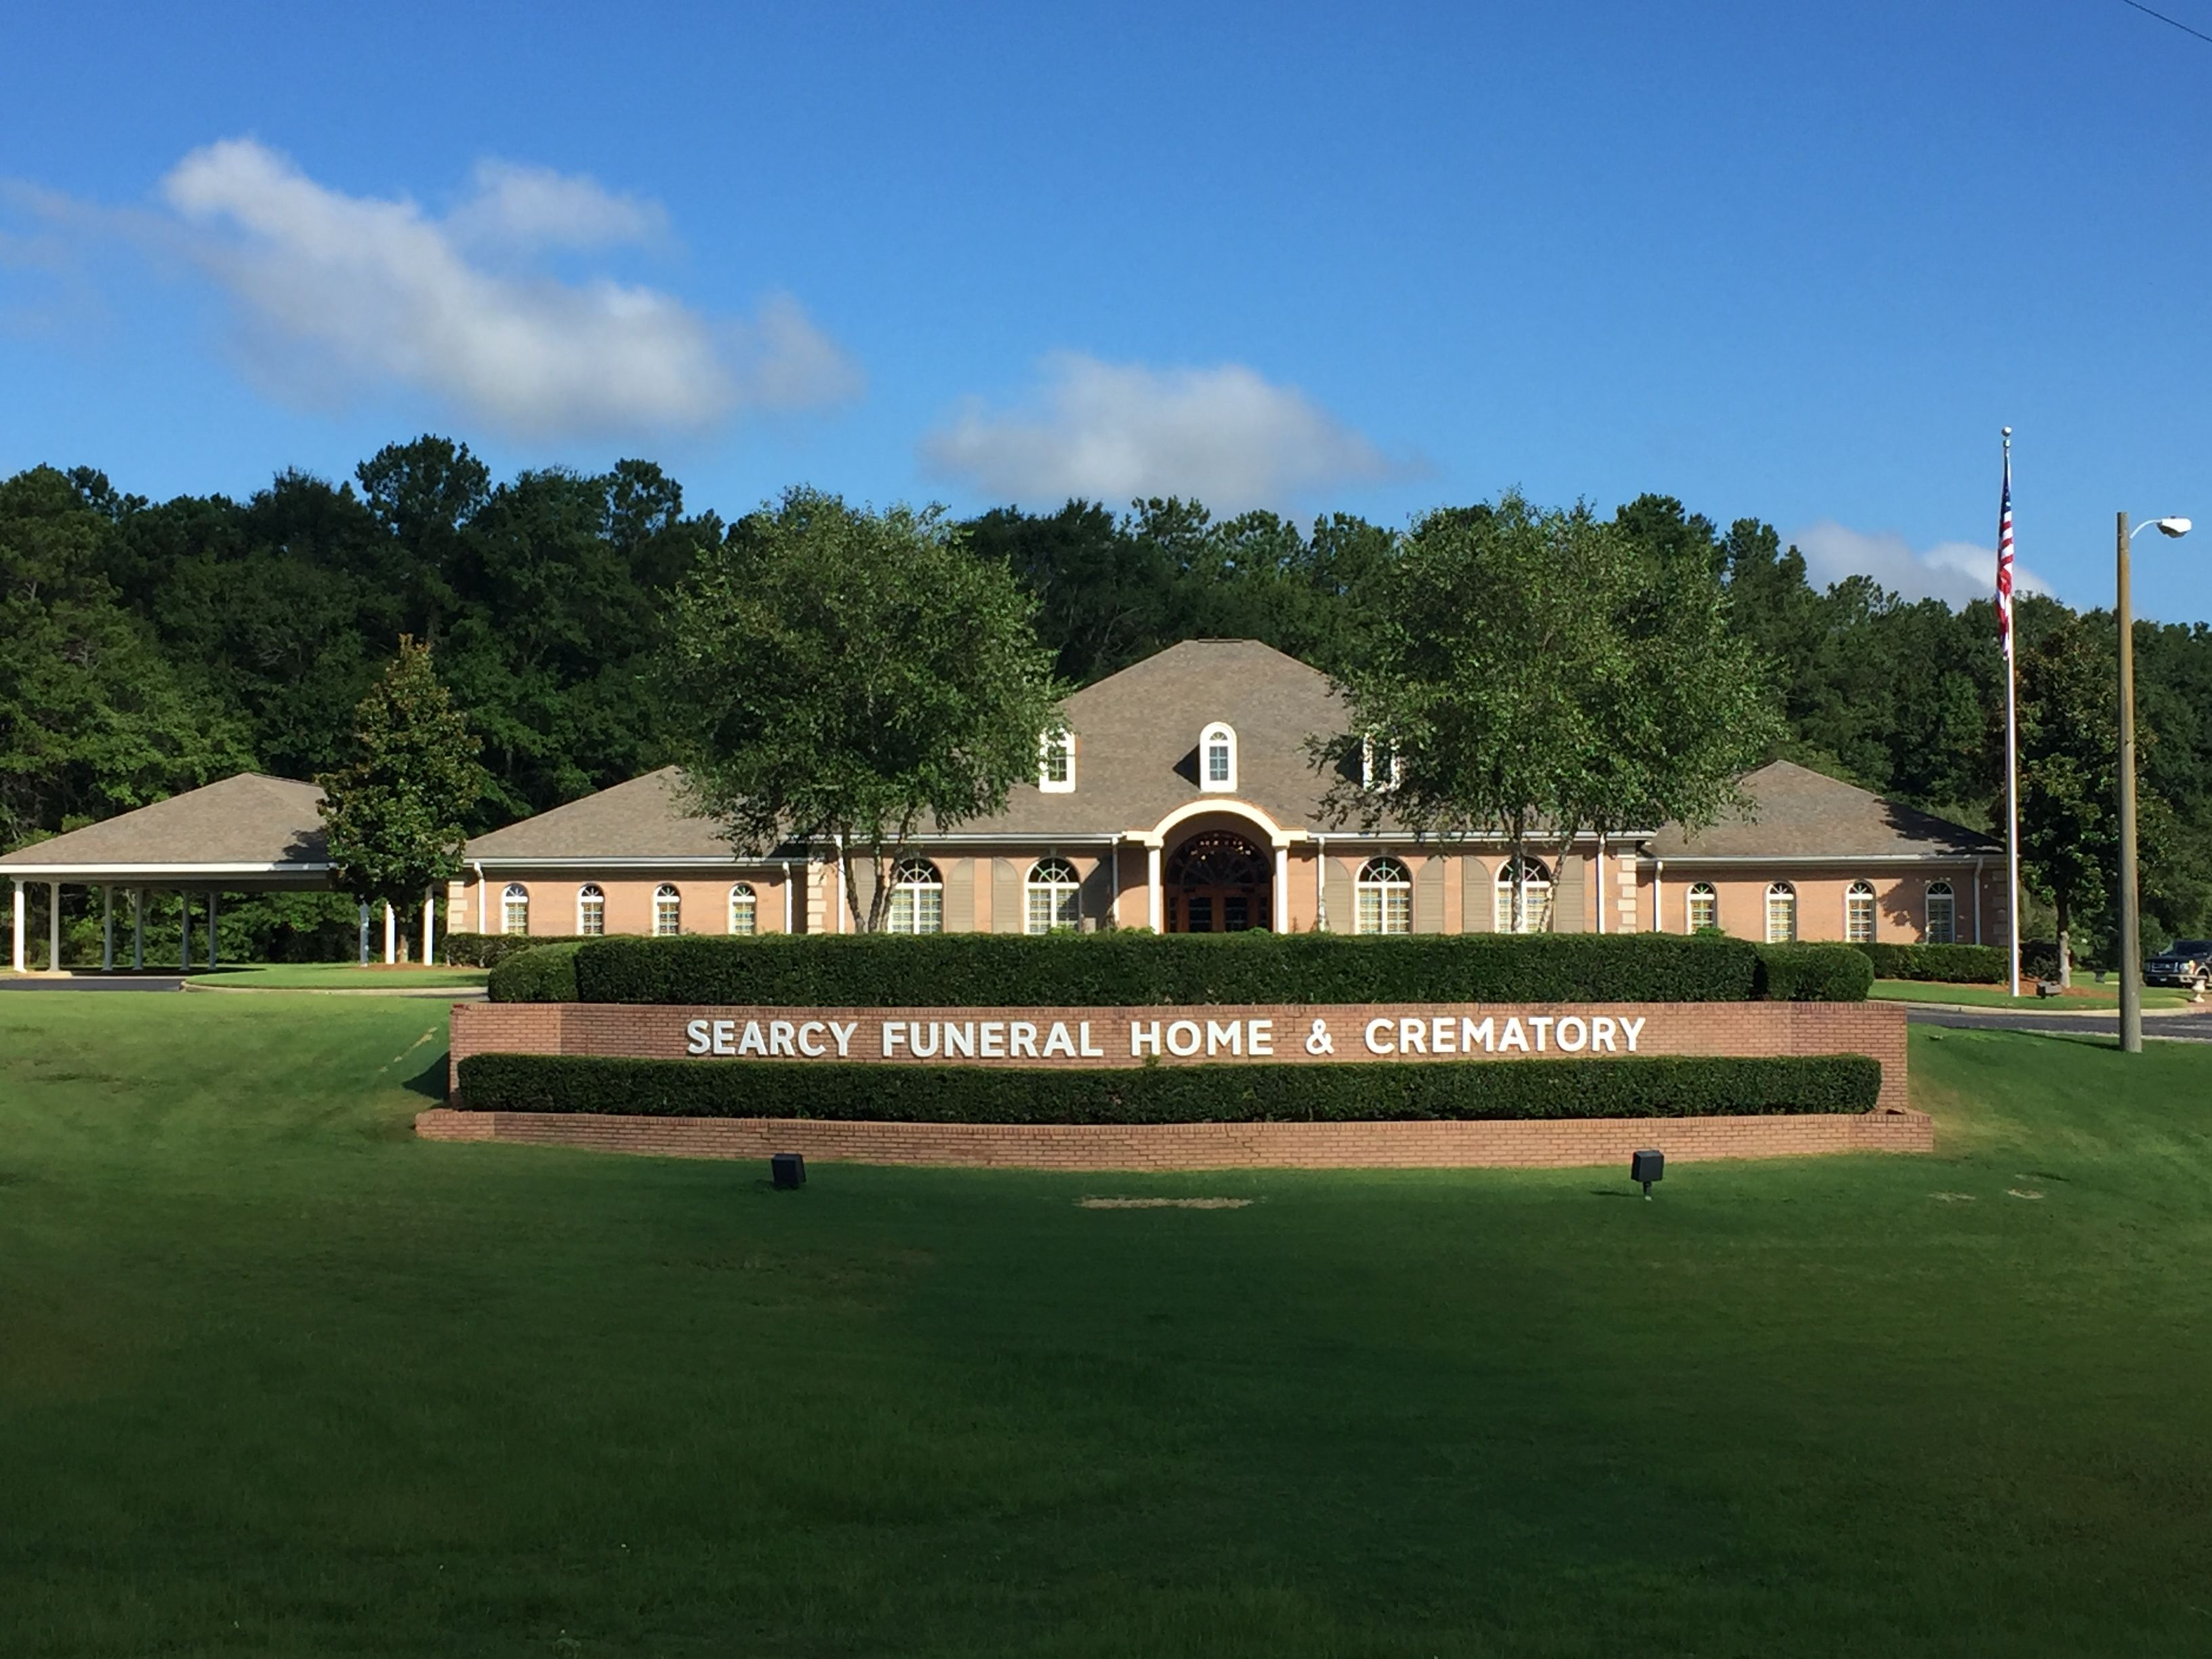 Searcy Funeral Home Crematory